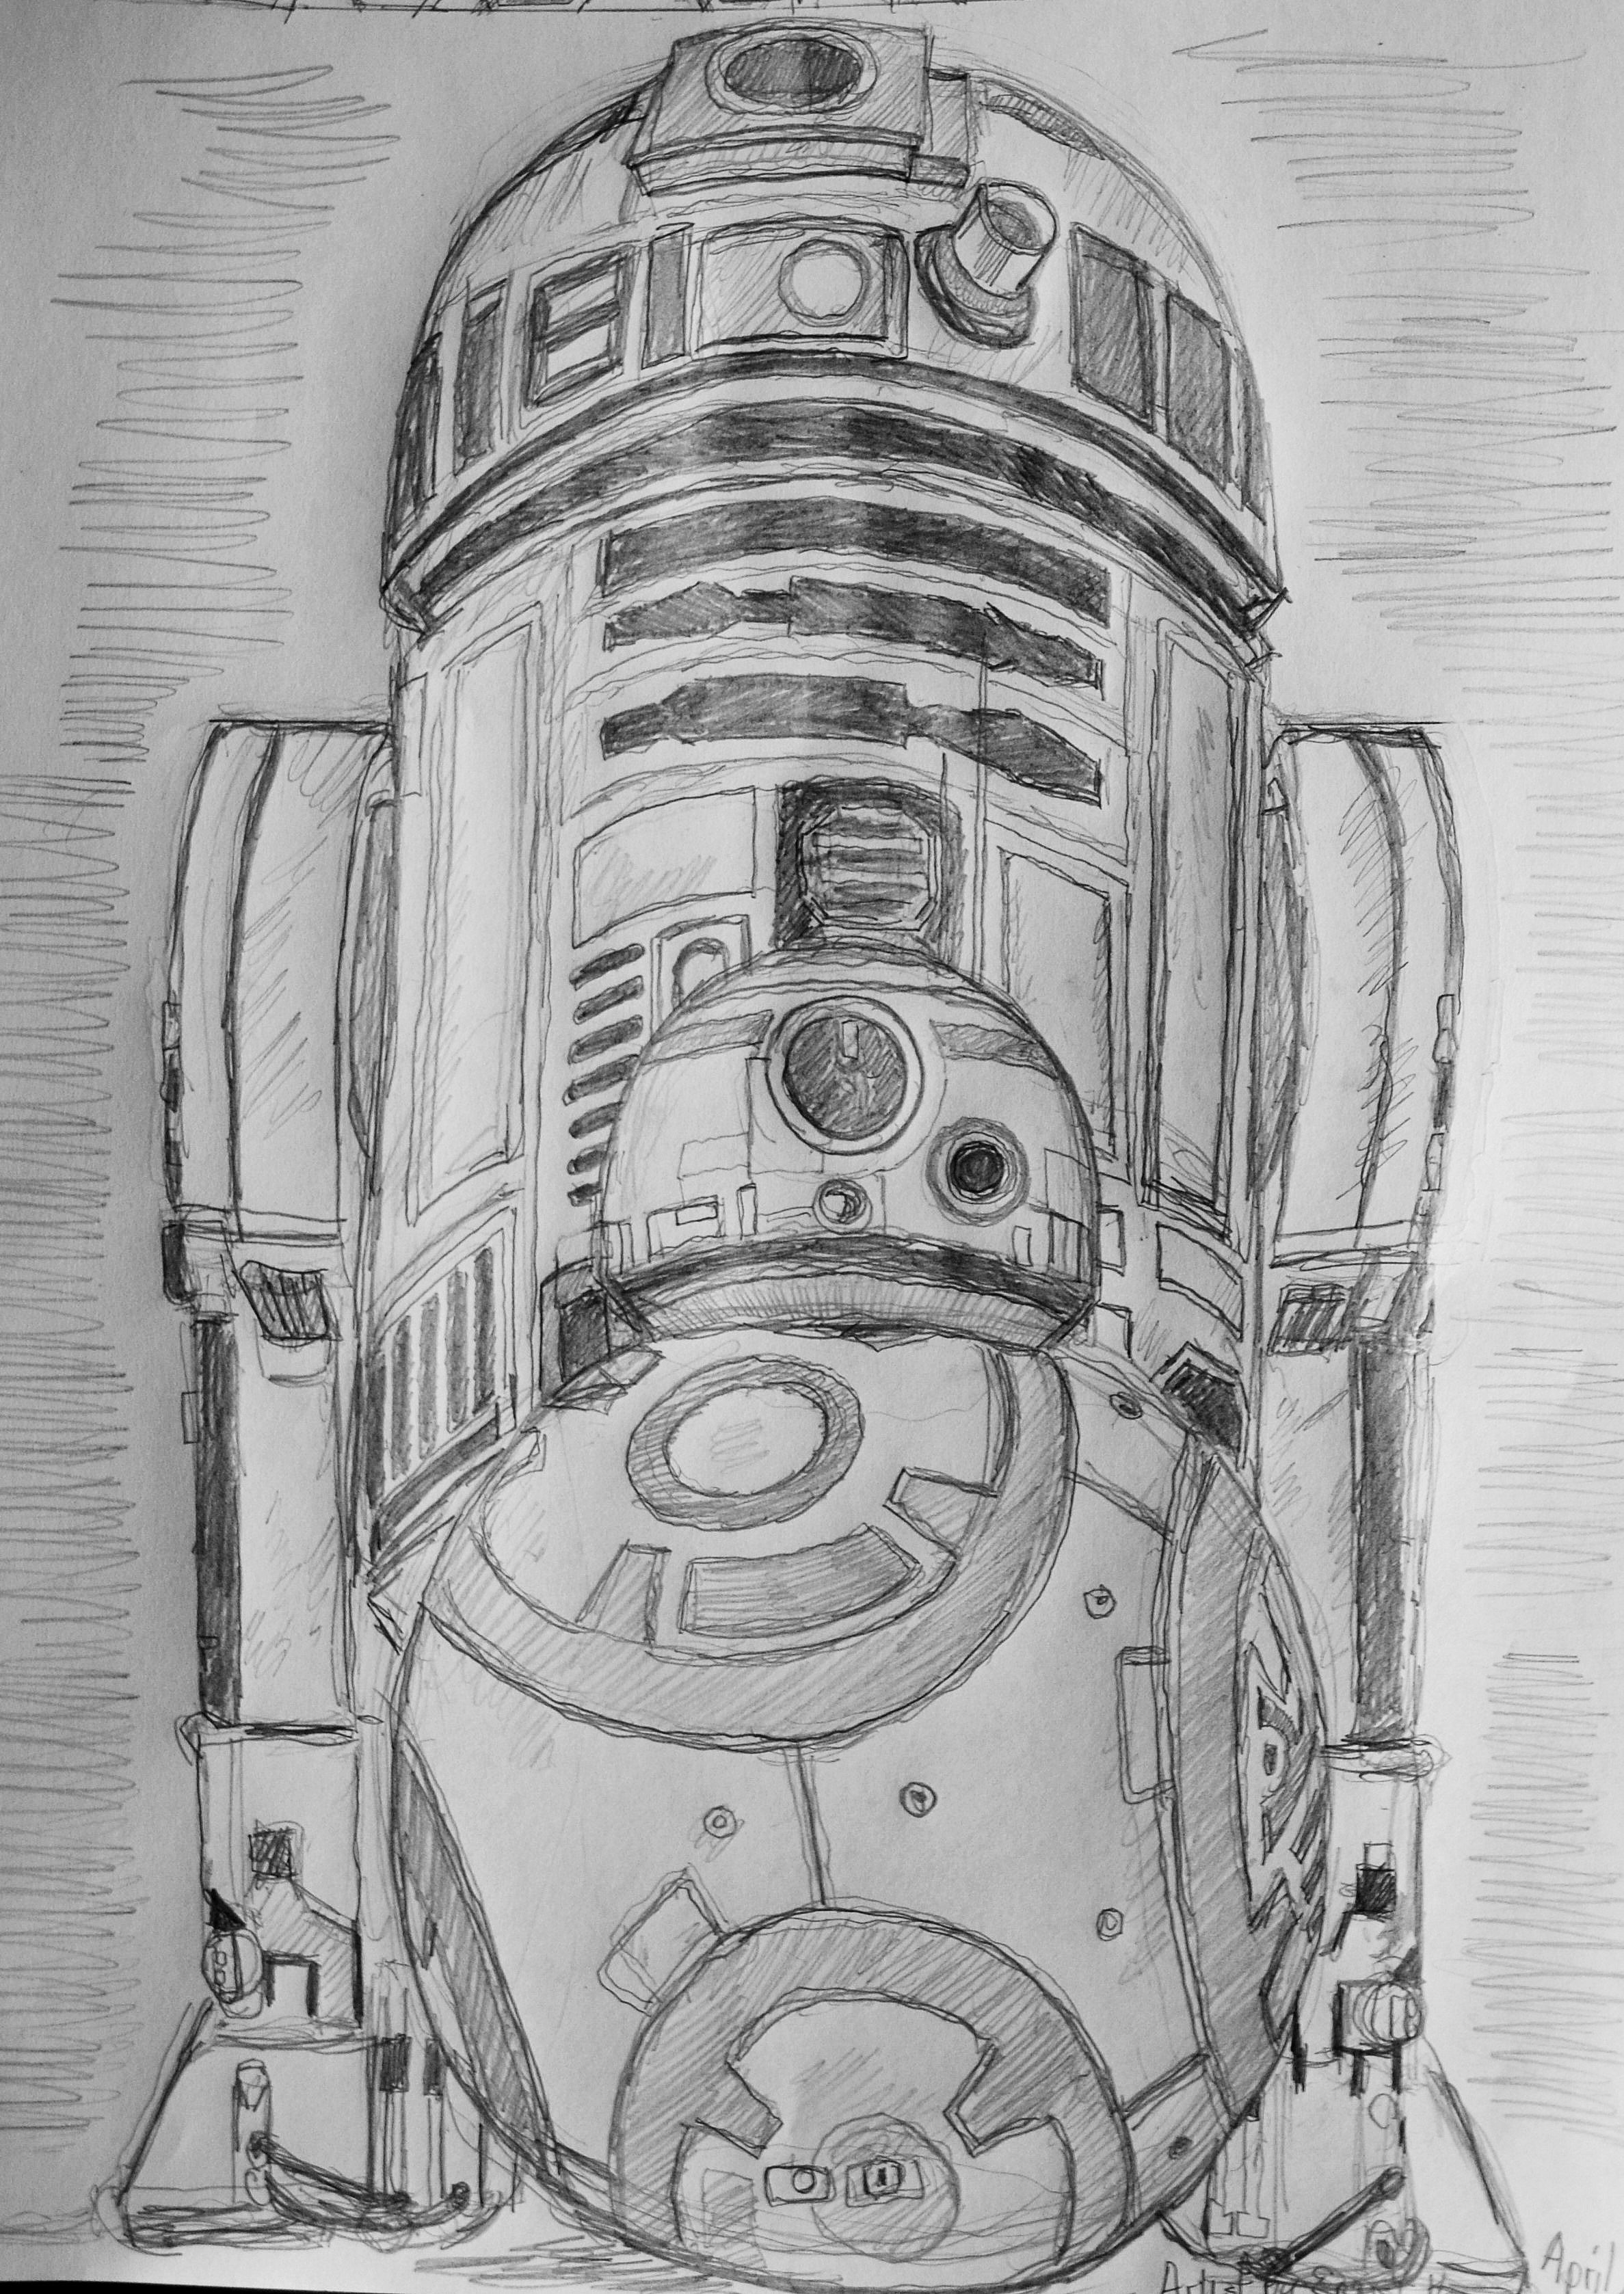 Here I drew a picture of the new STAR WARS The Force Awakens '' with R2D2 and B.B-8 ROBOT'' Artist by Ernst Kettler or Ernie Kettler '' from Strathroy Ontario, Canada .